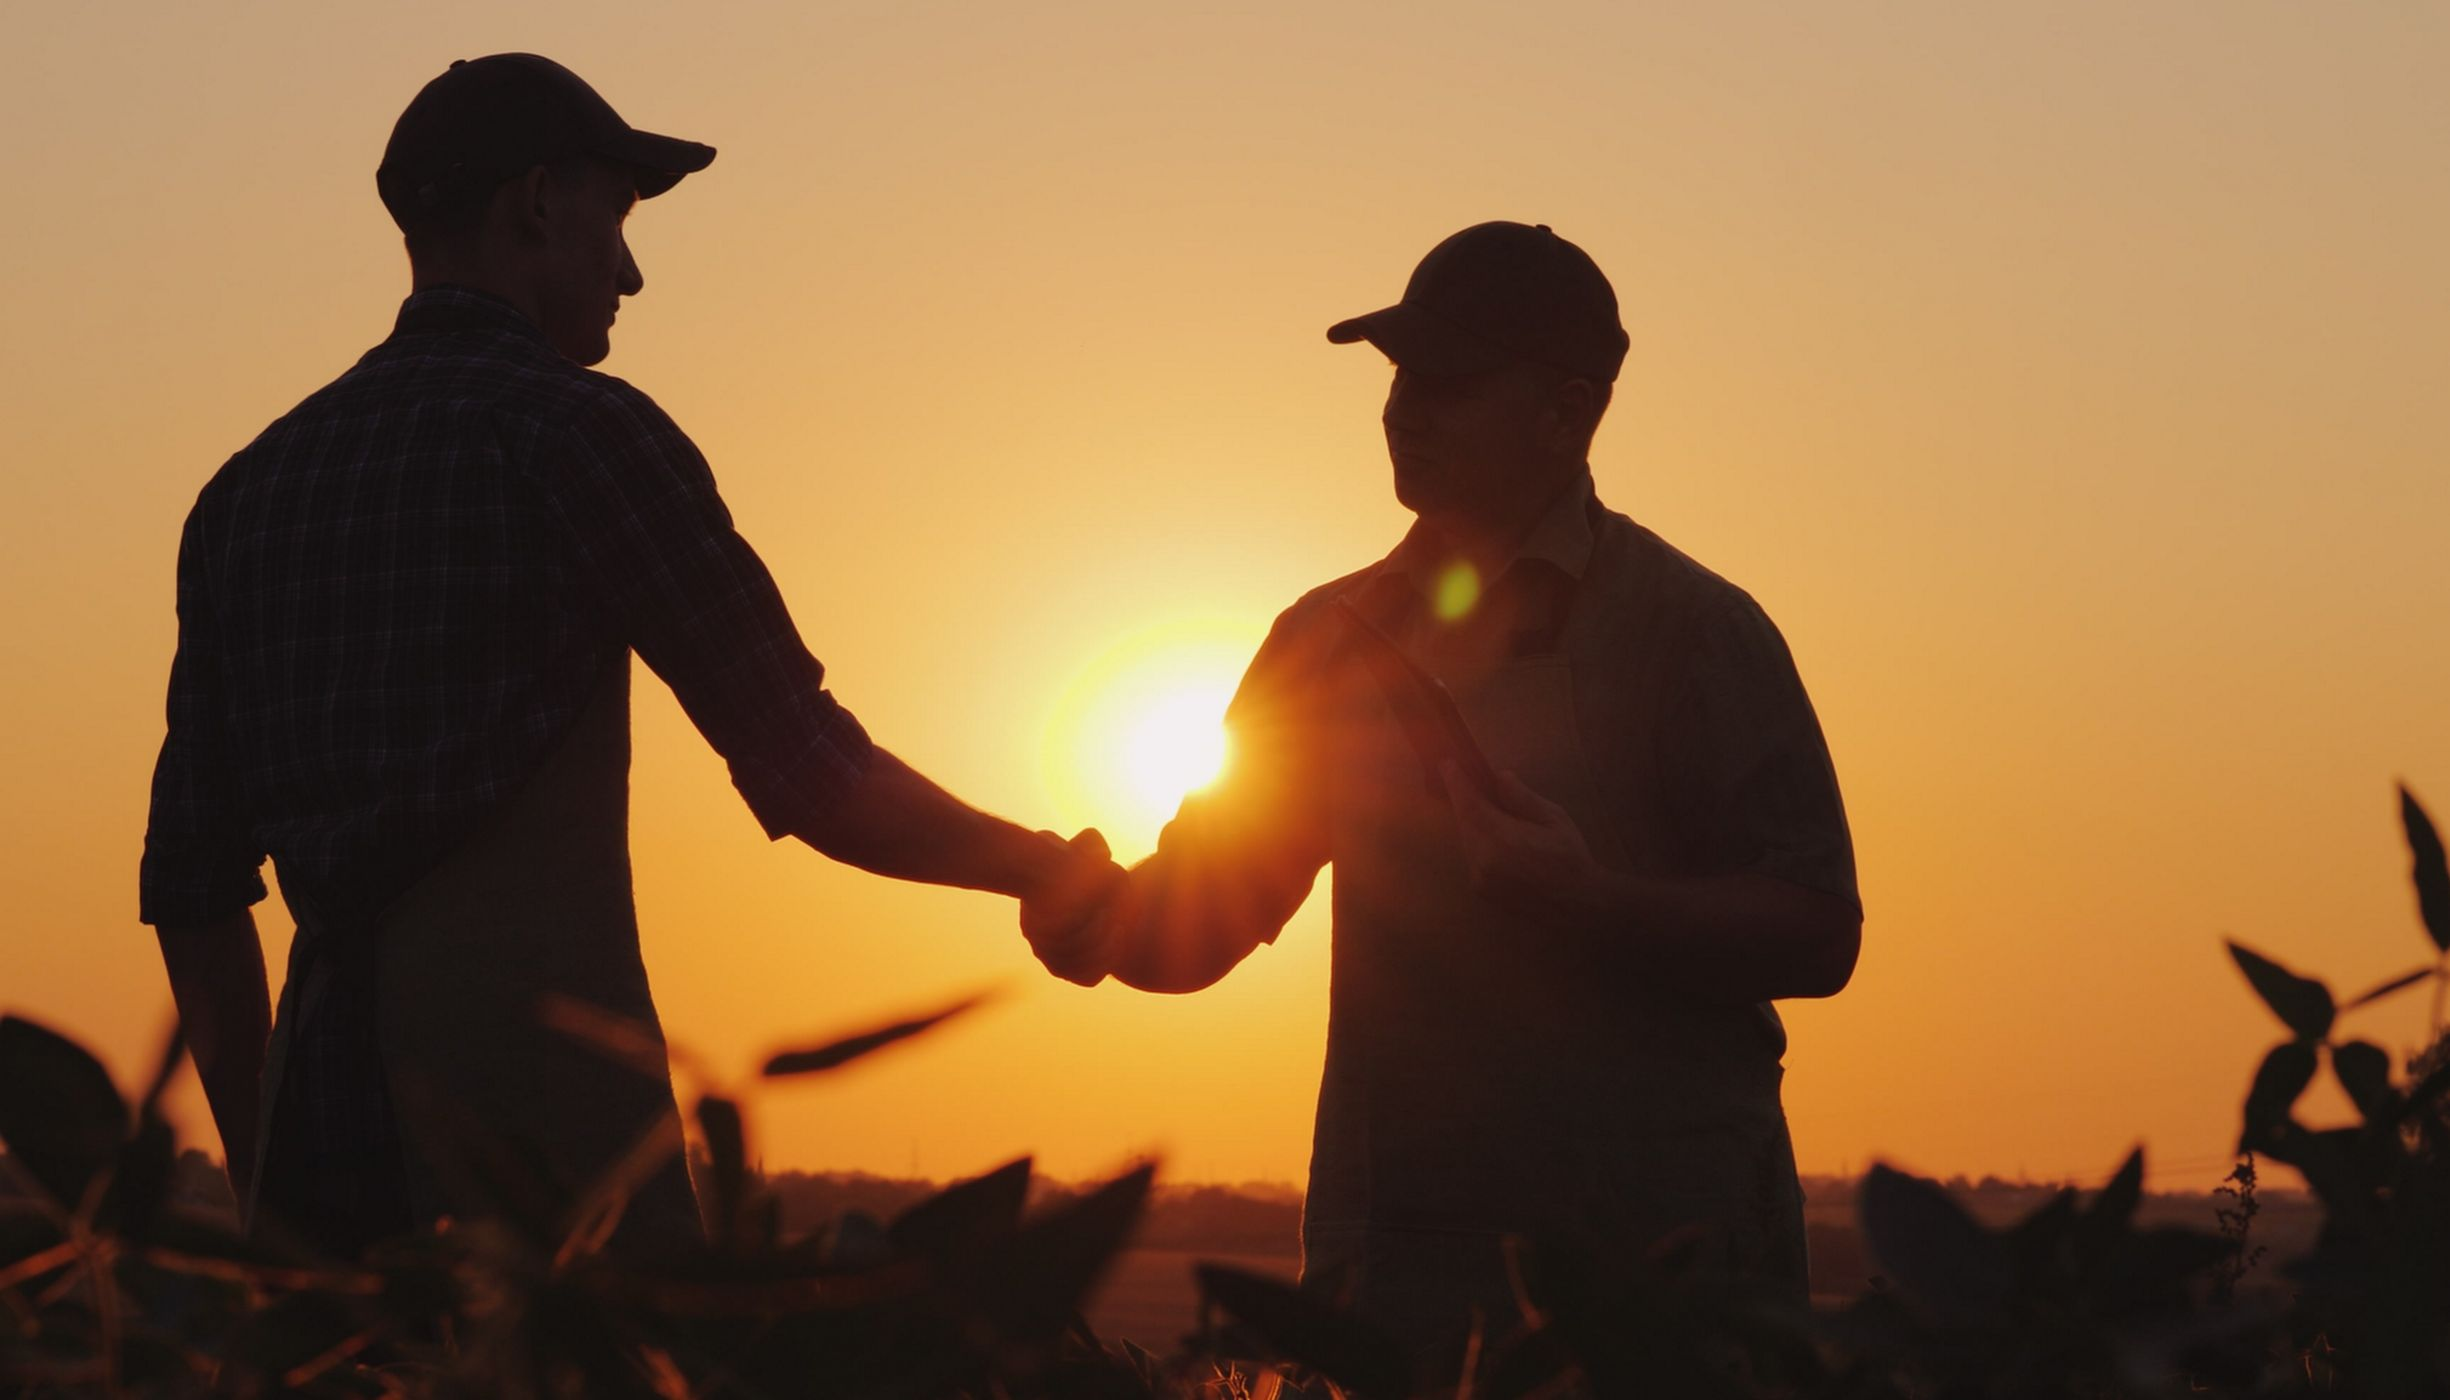 Farmers shaking hands in a field at sunset.